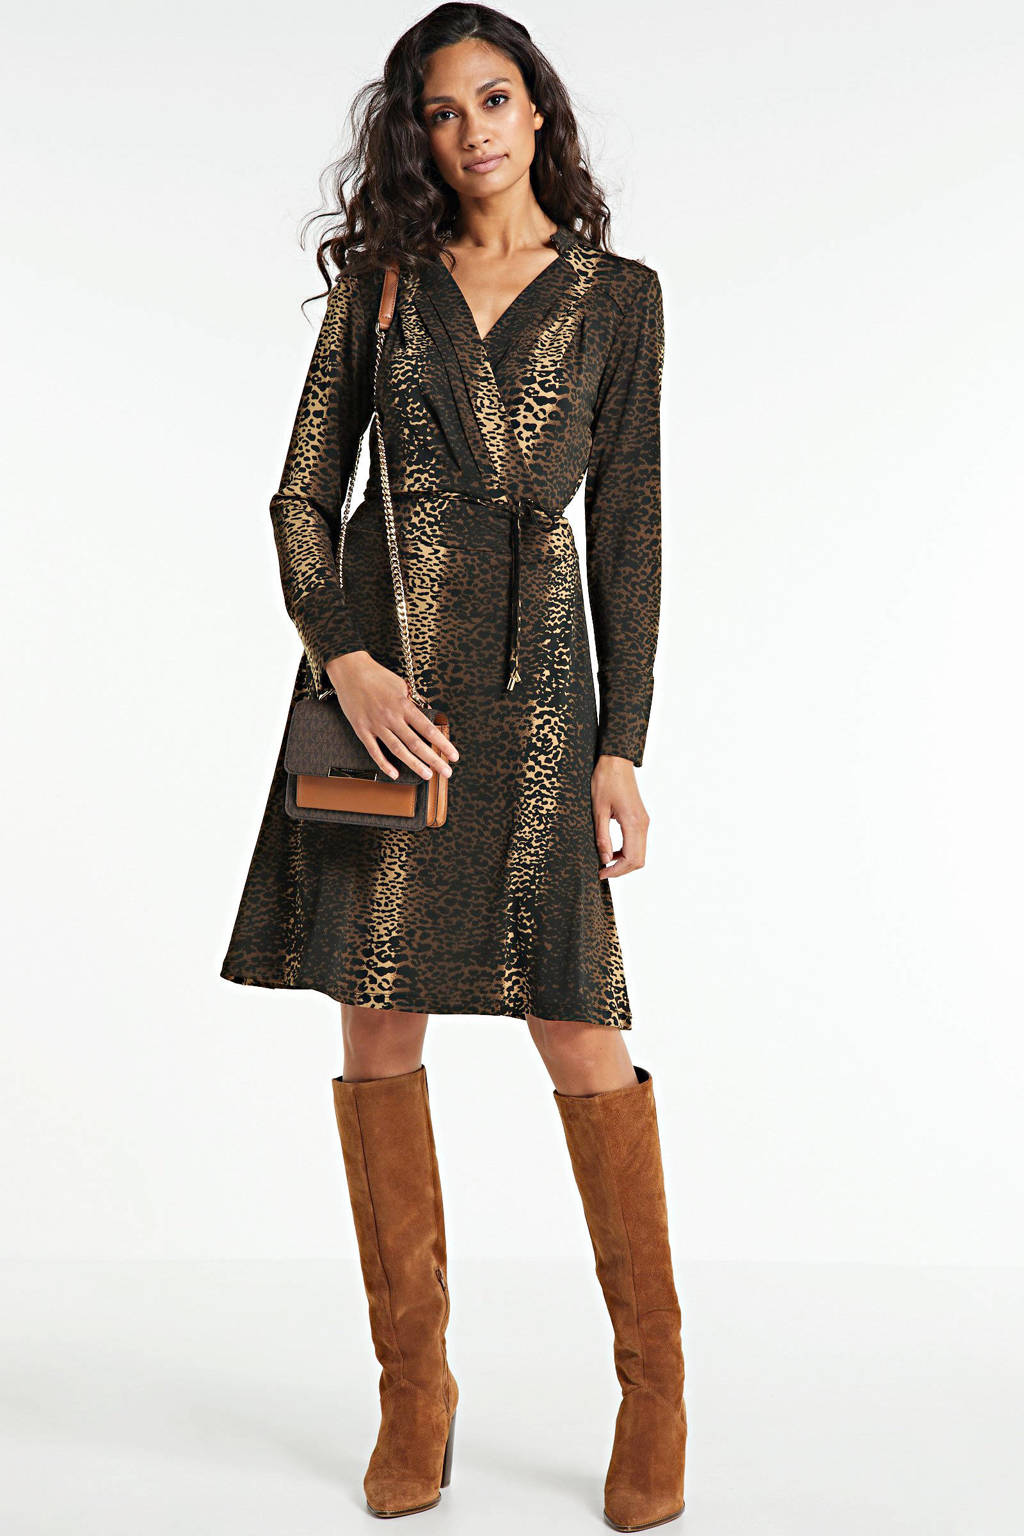 FREEQUENT blousejurk met all over print beige sand mix, Bruin